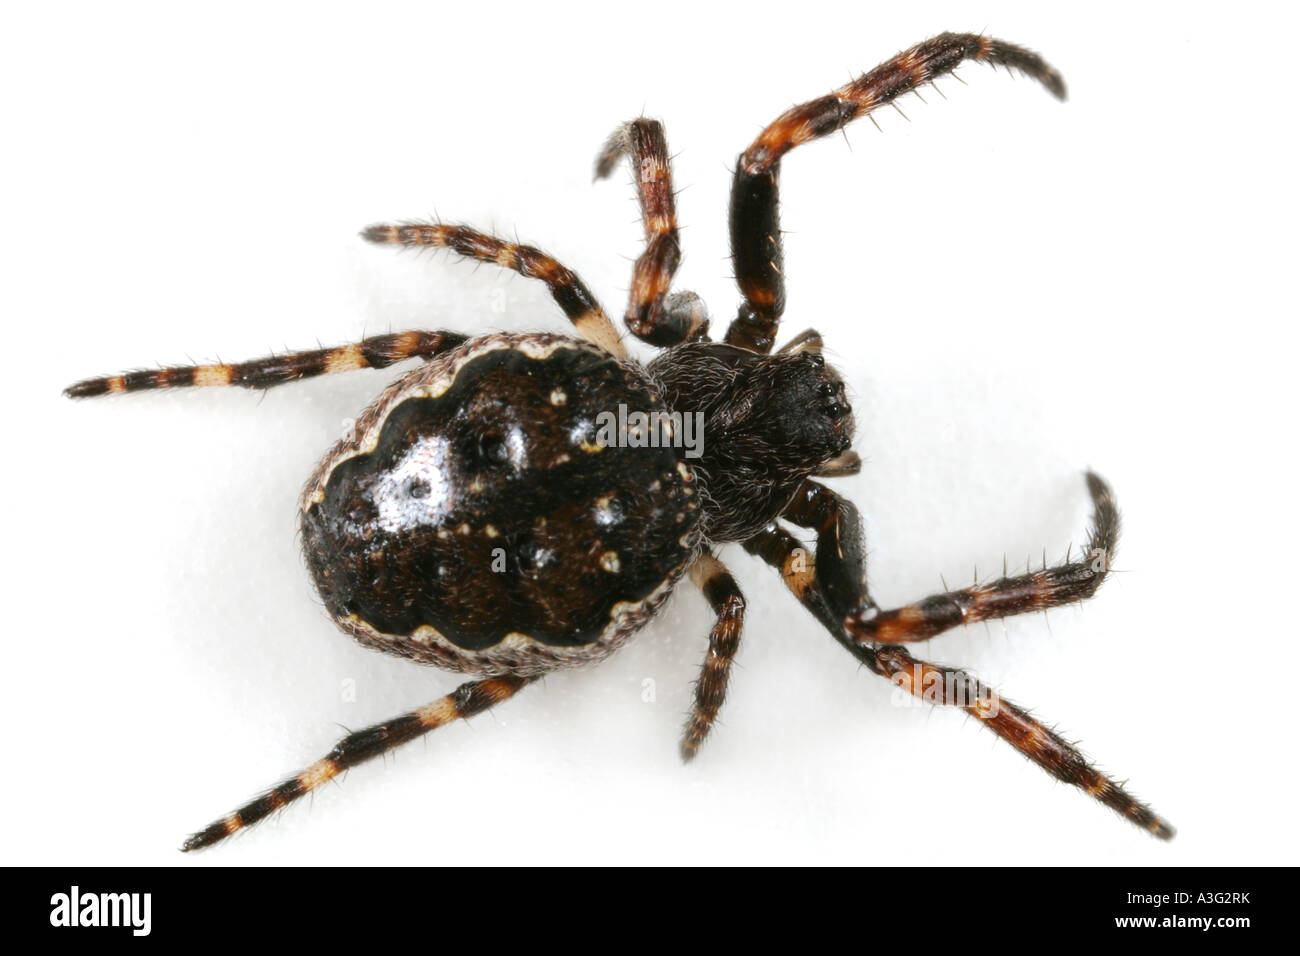 A Nuctenea umbratica spider, Araneidae family, on white background. - Stock Image